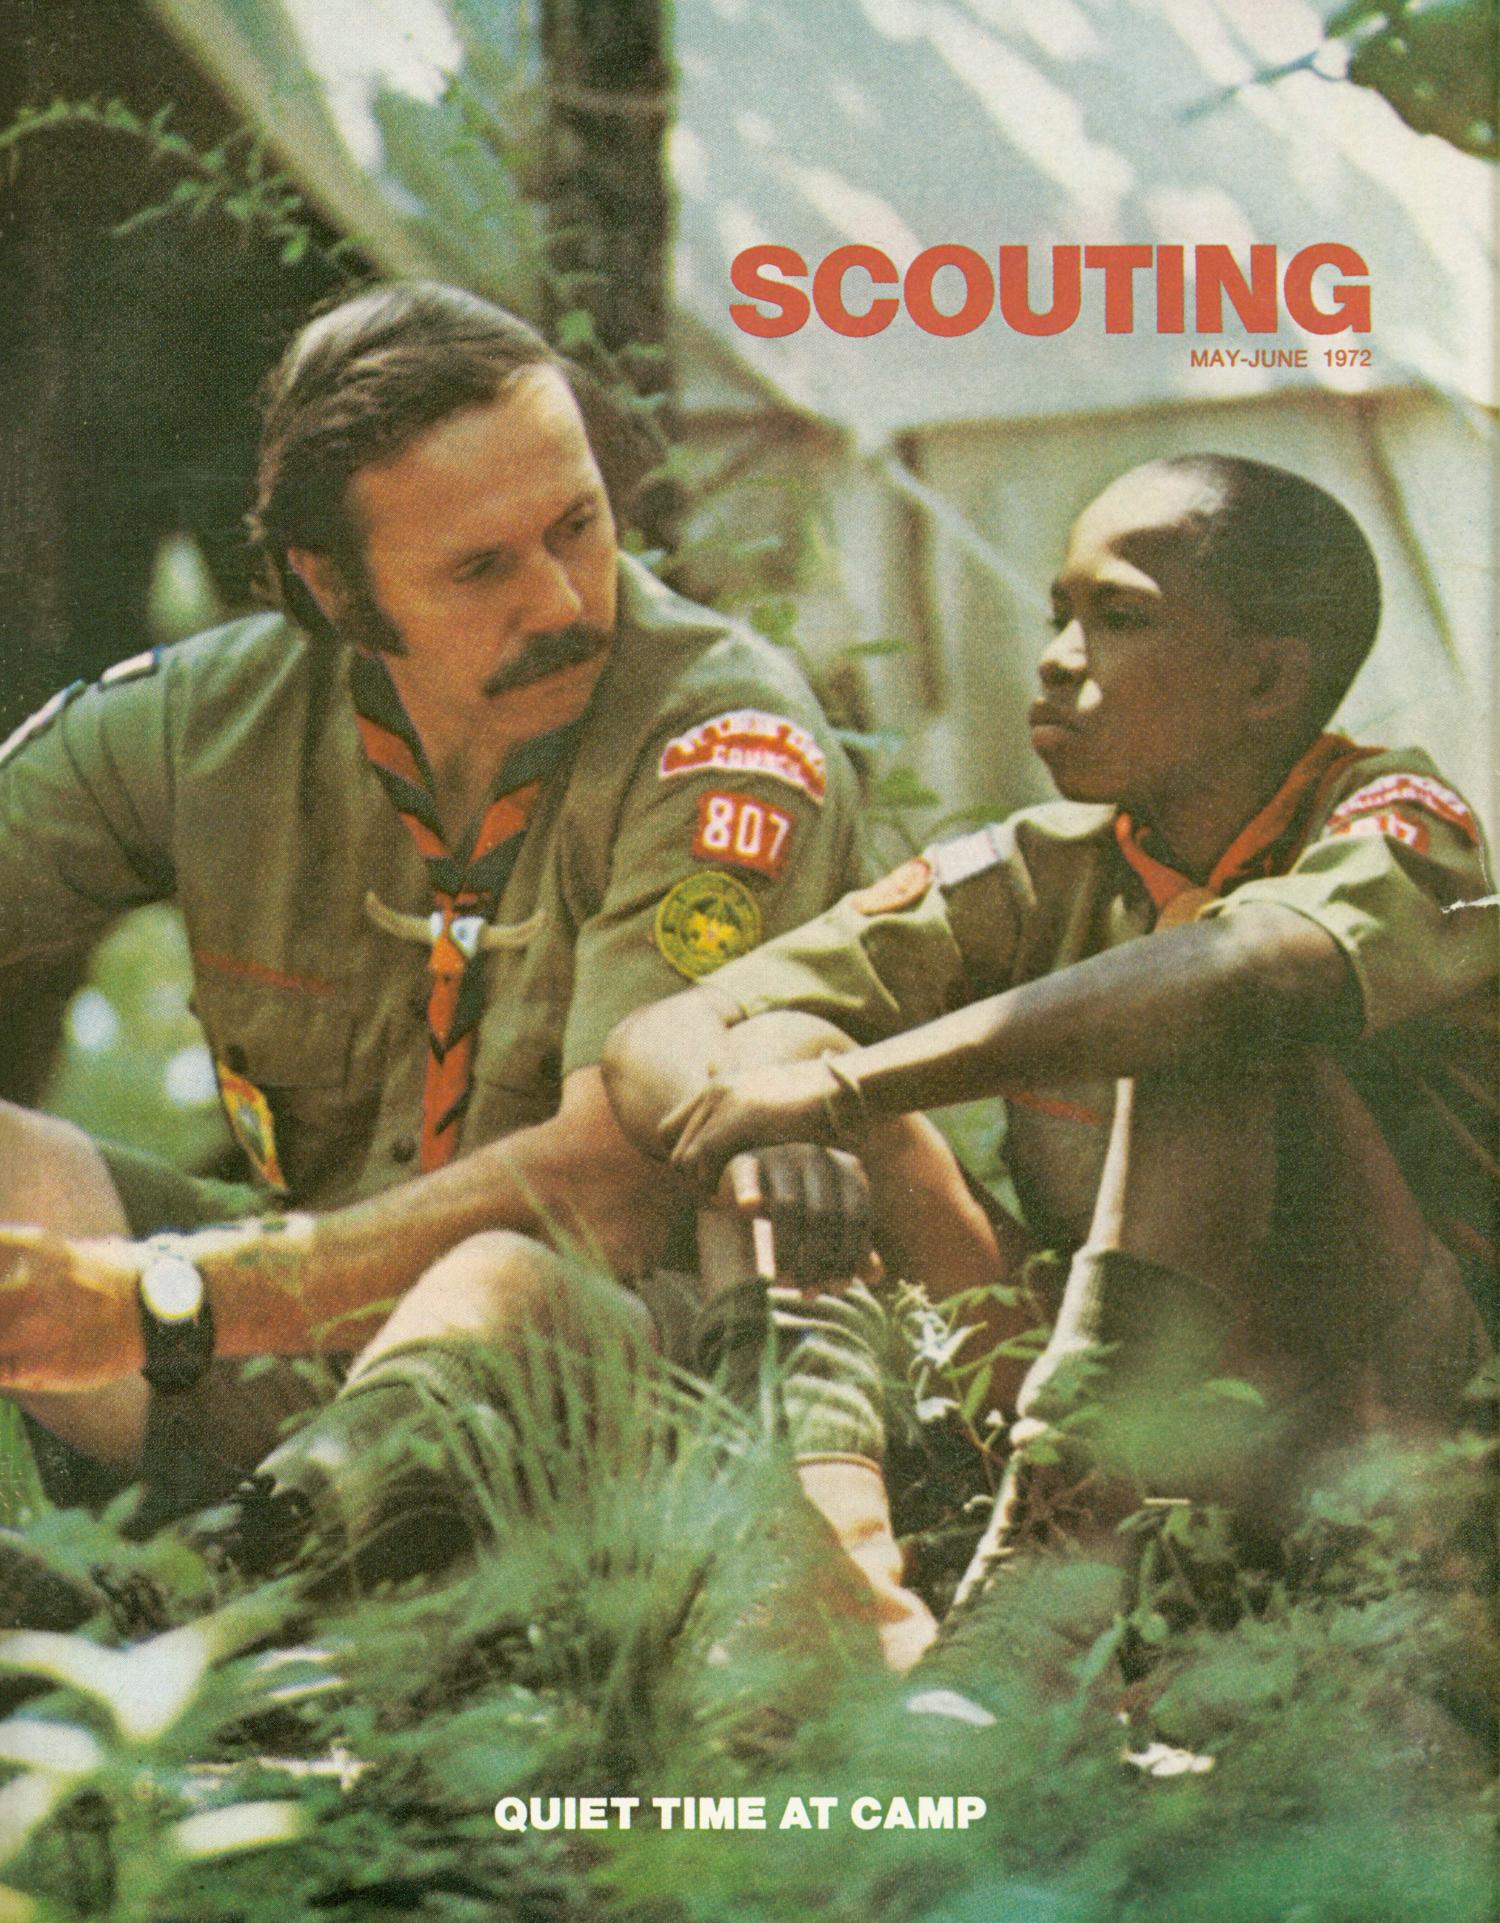 Scouting, Volume 60, Number 4, May-June 1972                                                                                                      Front Cover